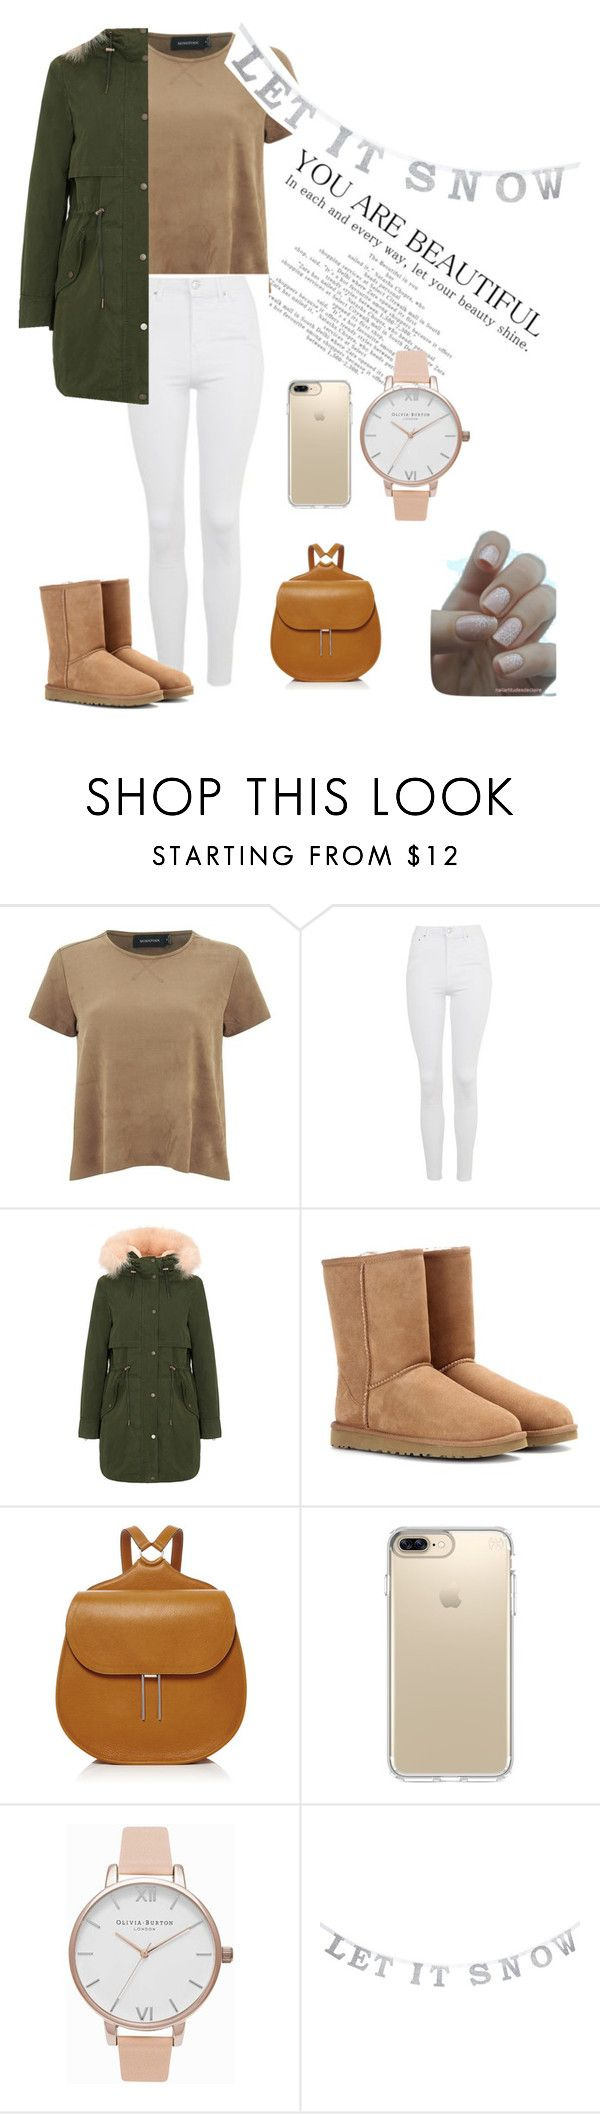 """""""Untitled #52"""" by ajlahamzi ❤ liked on Polyvore featuring MINKPINK, Topshop, Parka London, UGG, Hayward, Speck and Olivia Burton"""